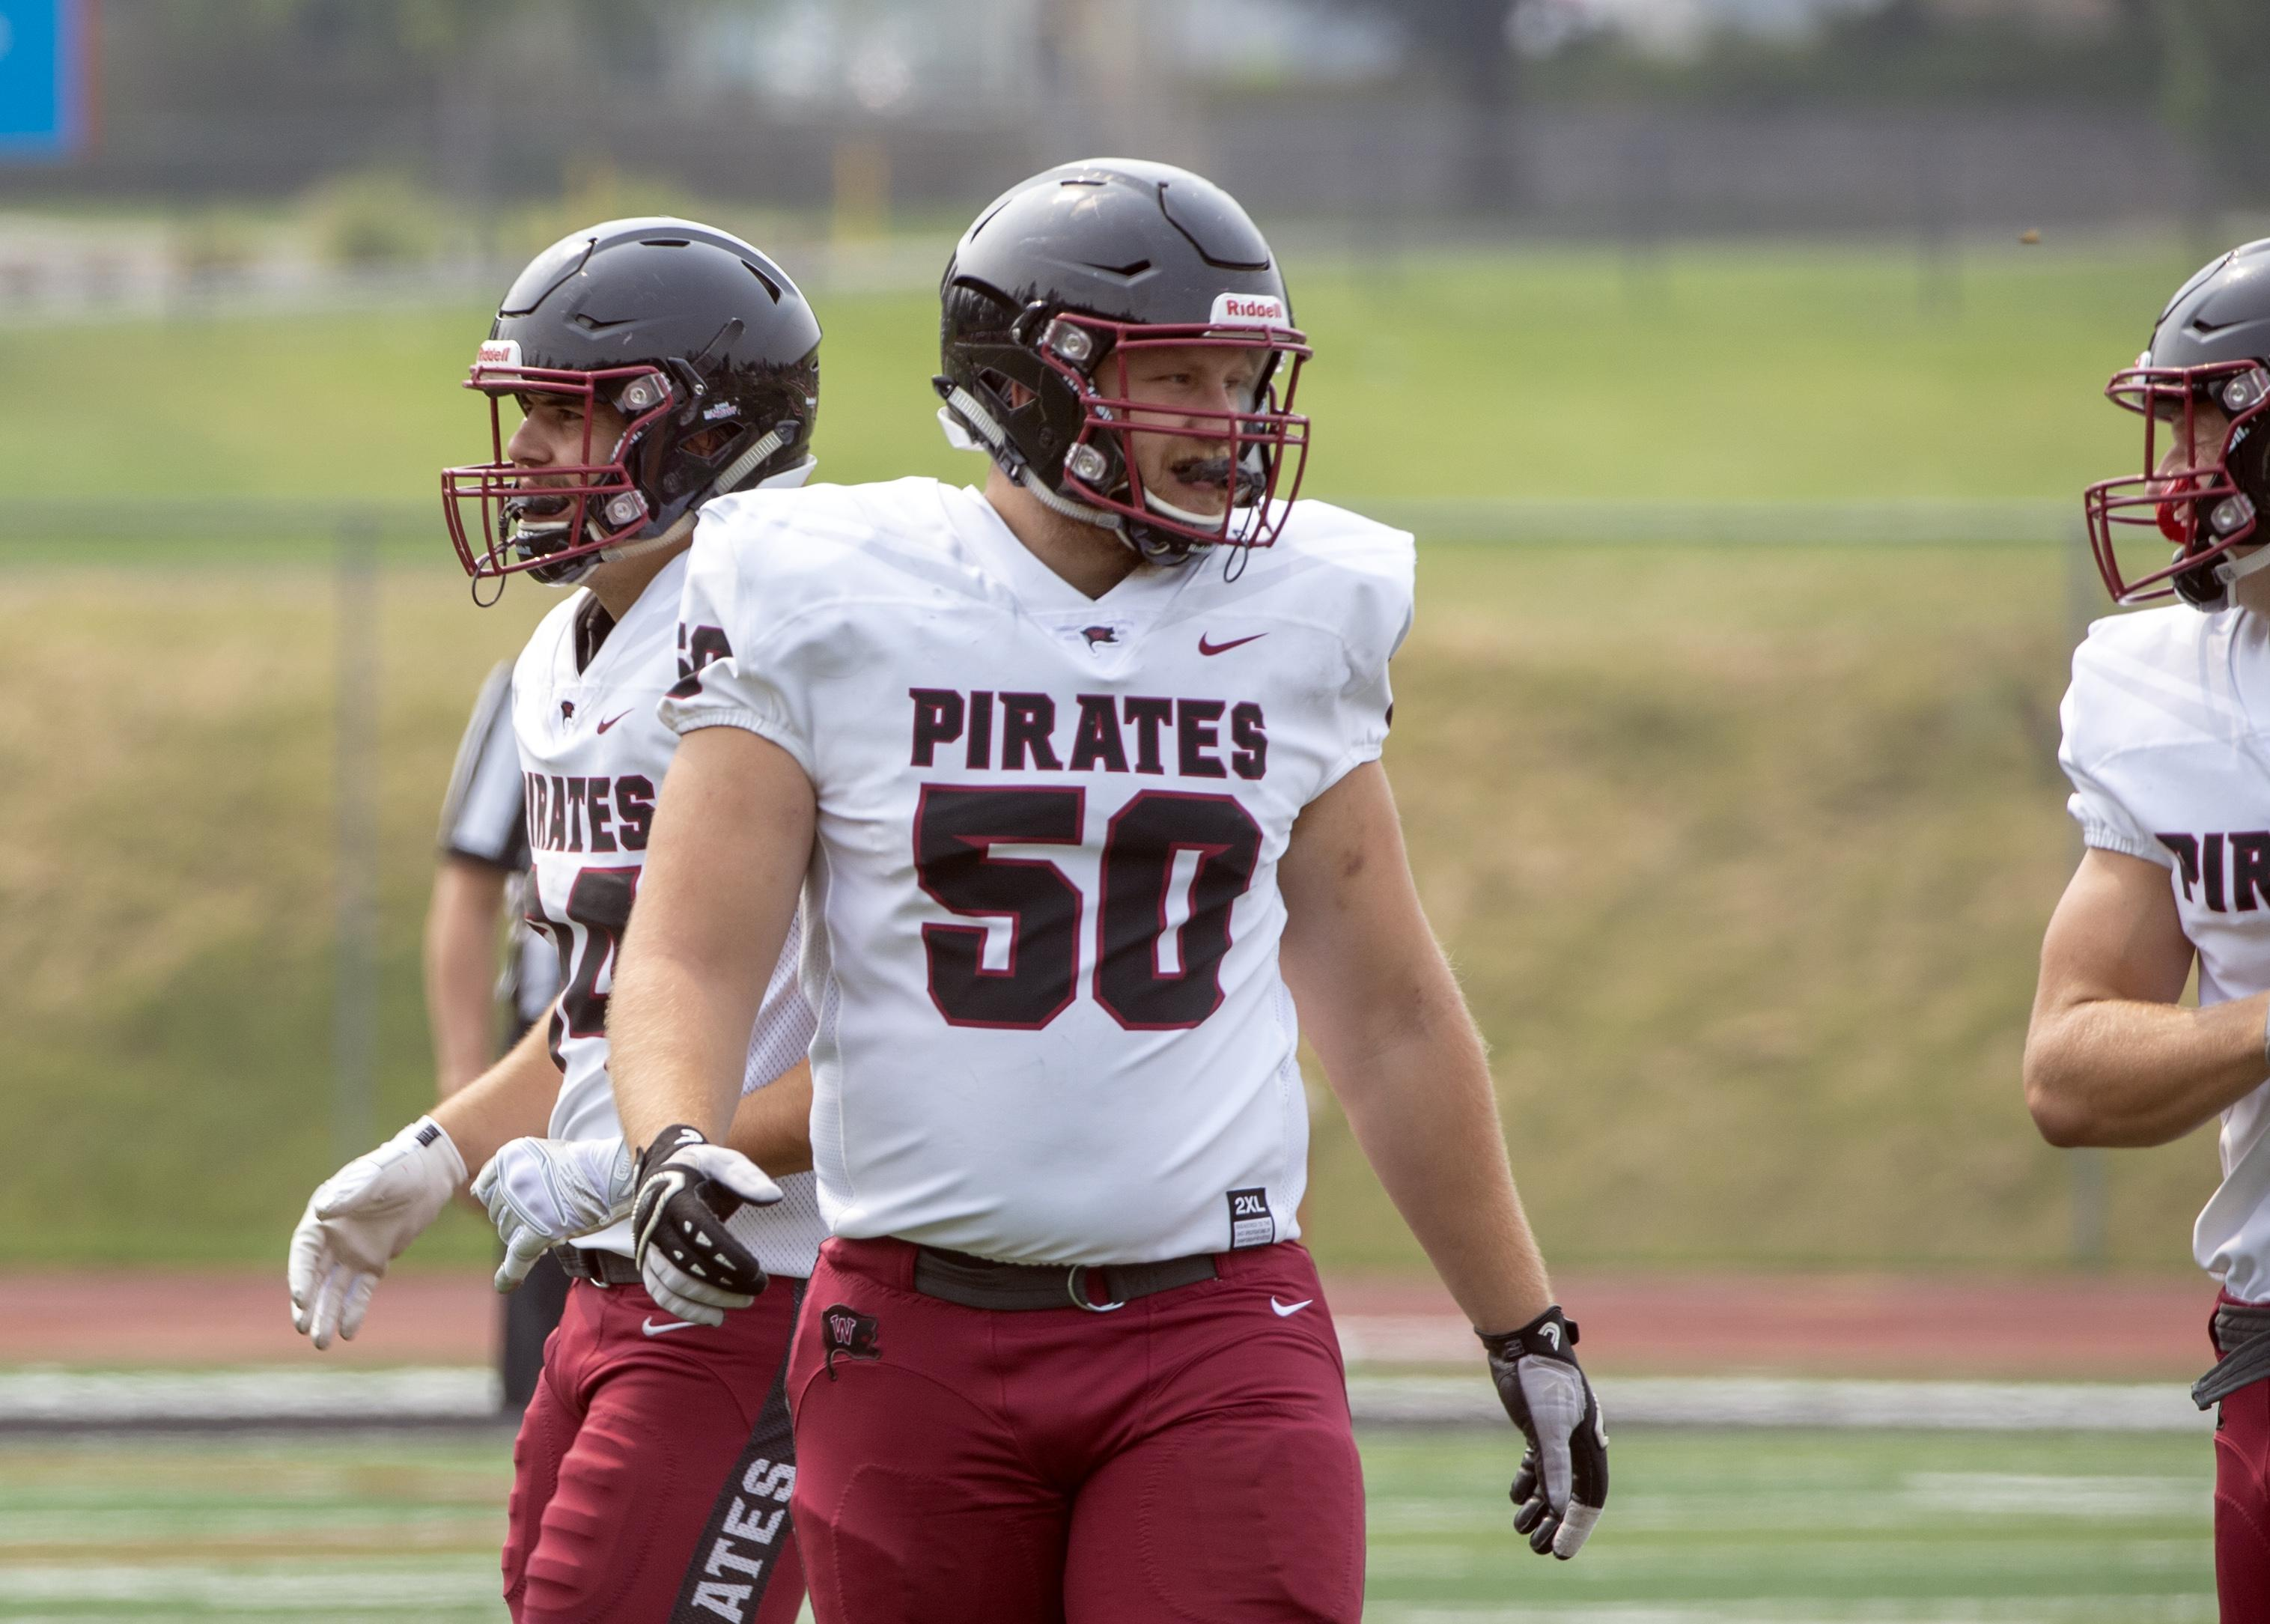 Locally: Whitworth's Tyler Adamson named Offensive MVP Honorable